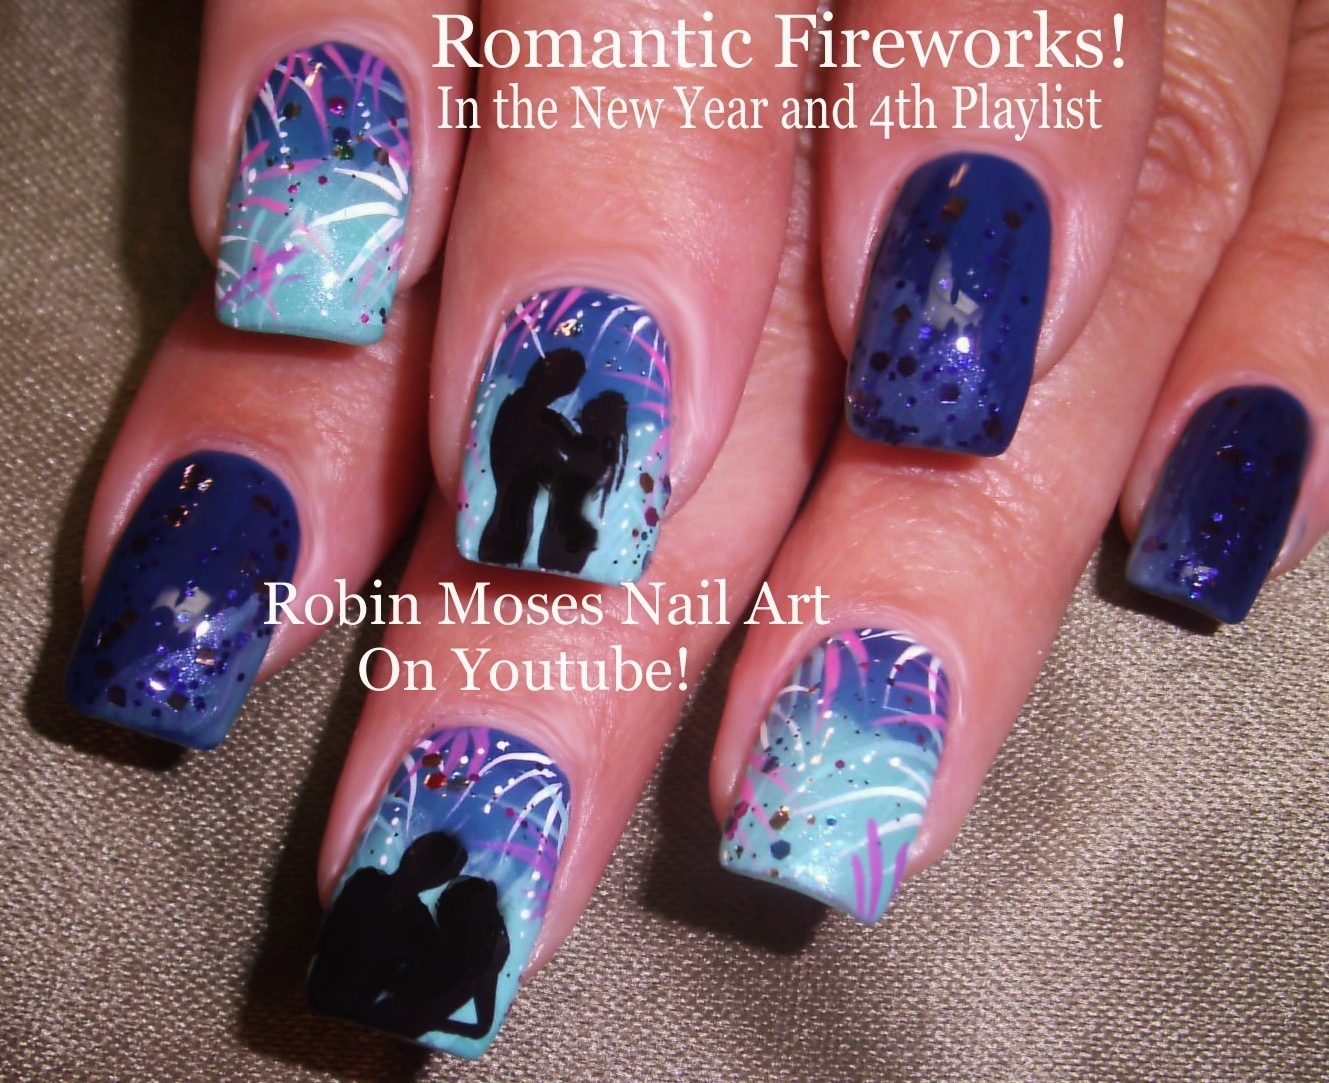 Robin moses nail art romantic firework nail art design tutorial romantic firework nail art design tutorial up for the 4th of july have fun painting prinsesfo Gallery